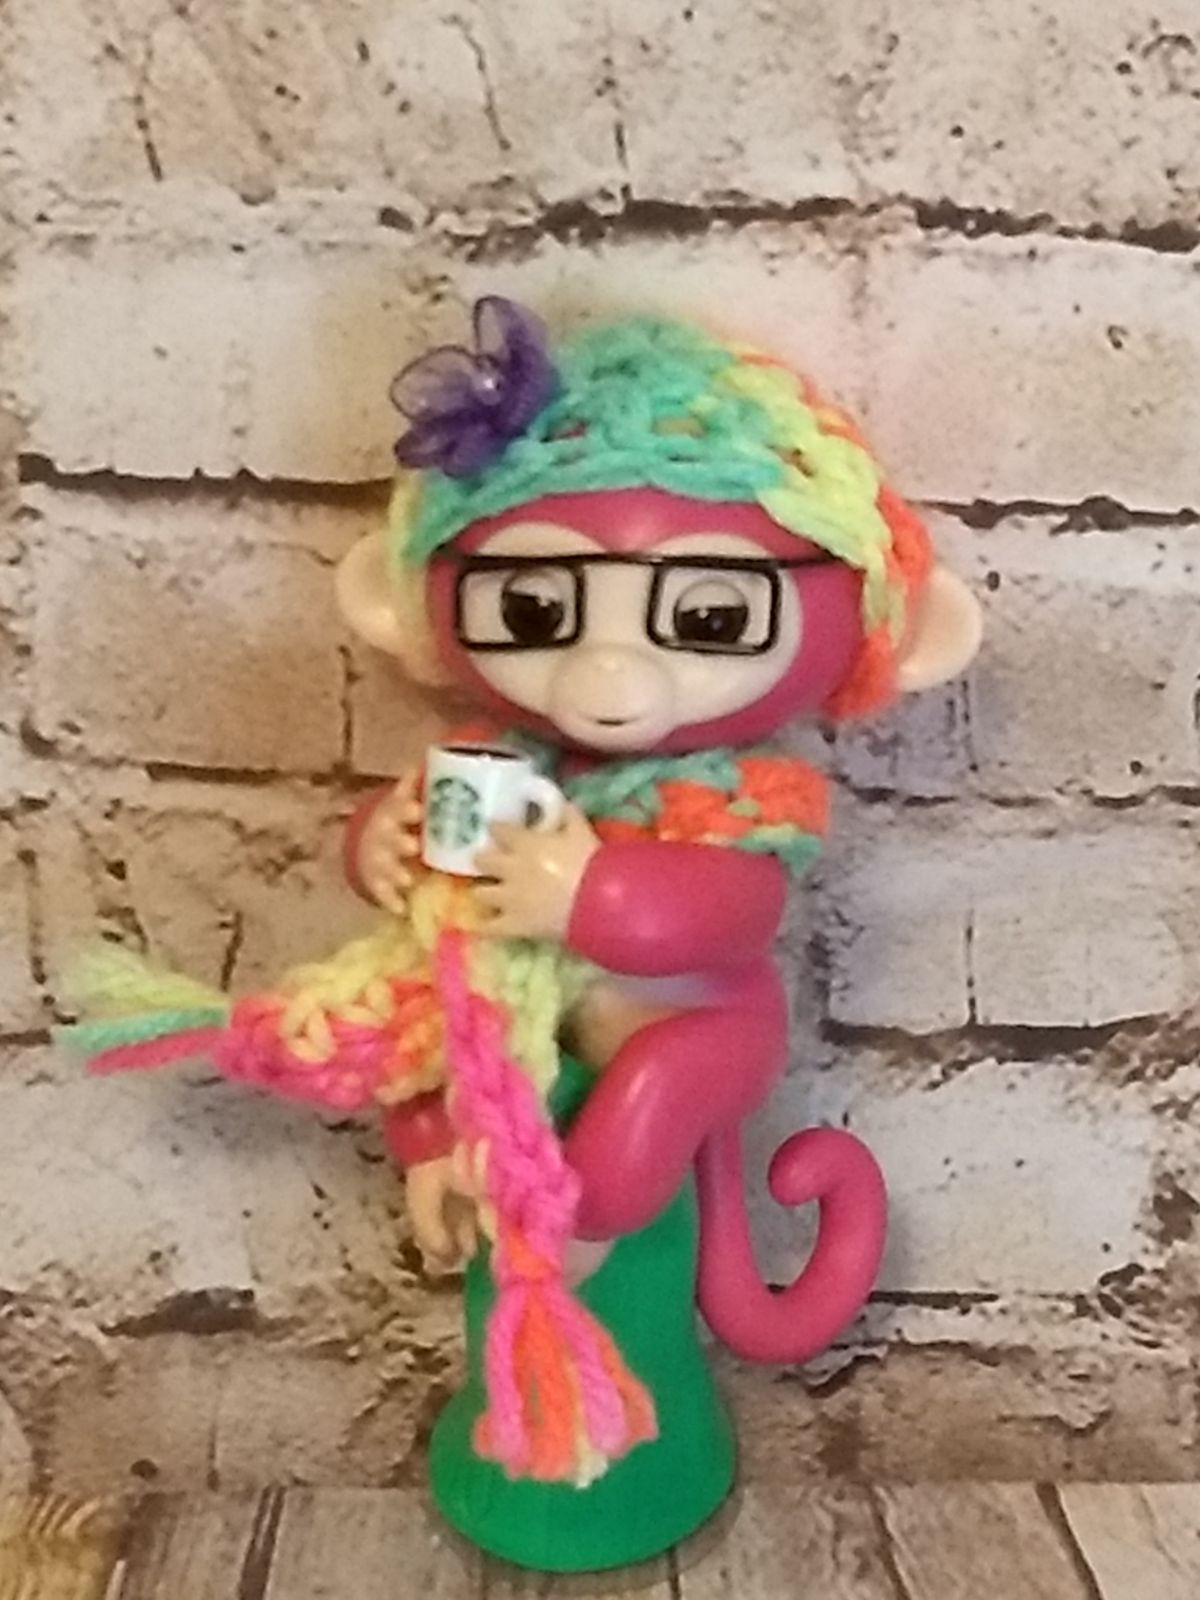 Fingerlings Pink Monkey with Accessories